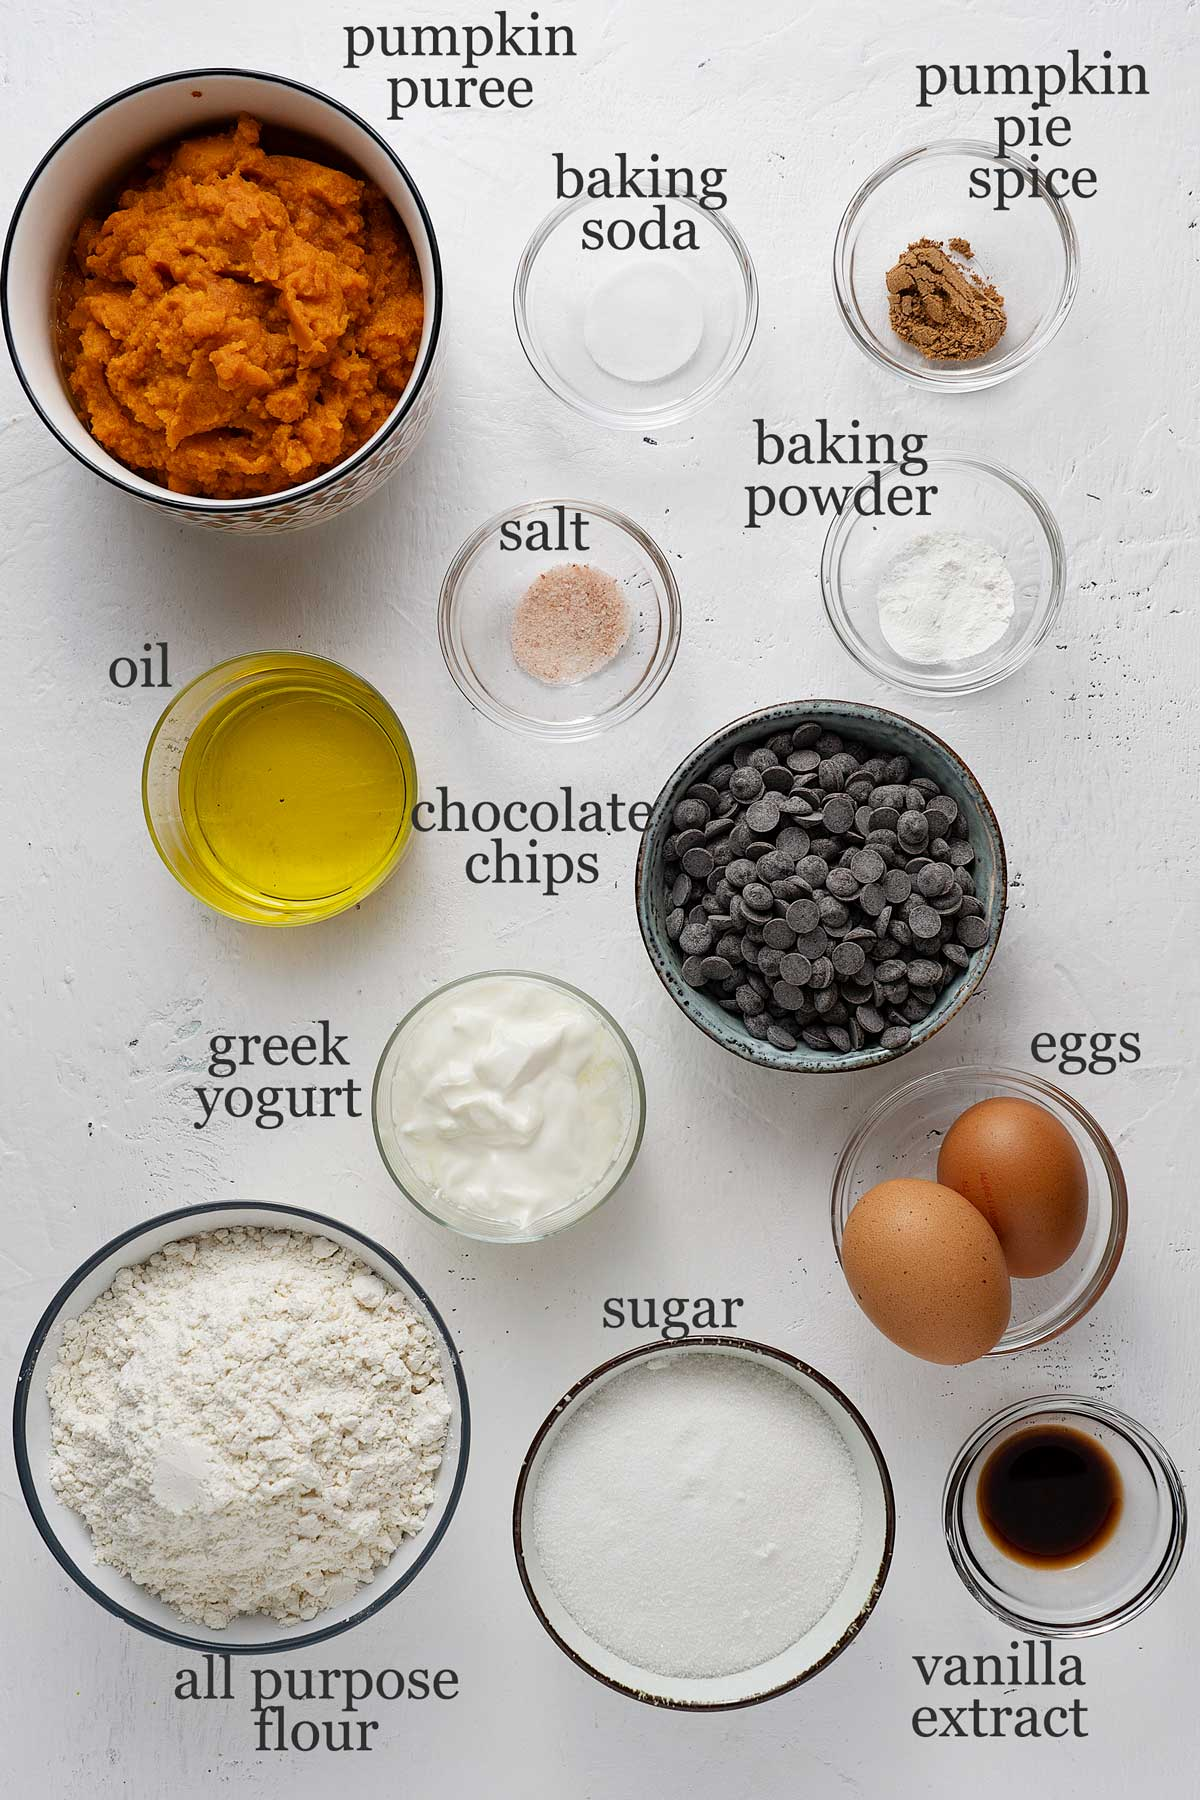 Ingredients for pumpkin chocolate chip muffins